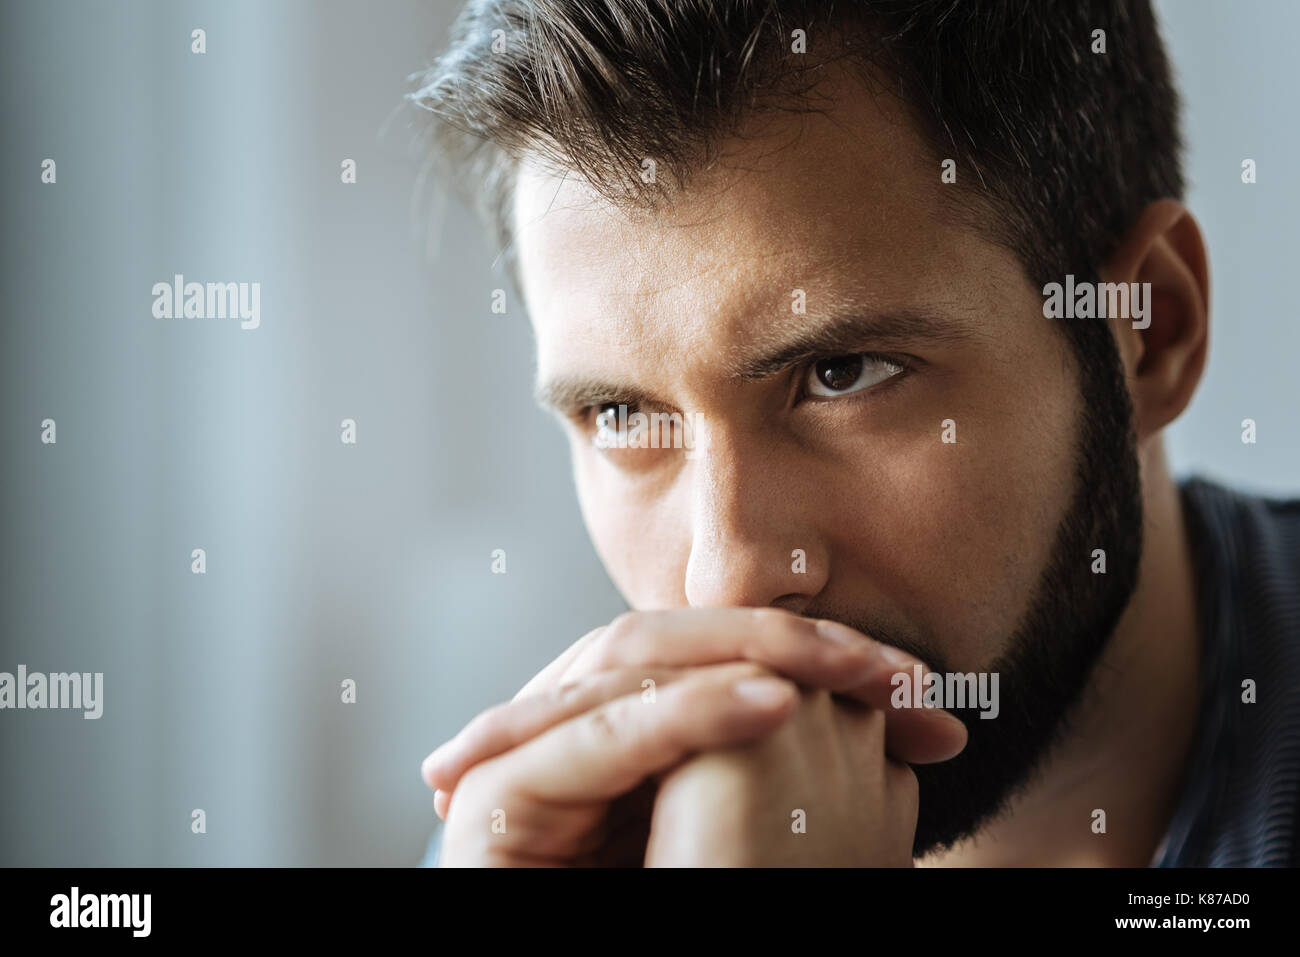 Portrait of an unhappy thoughtful man - Stock Image